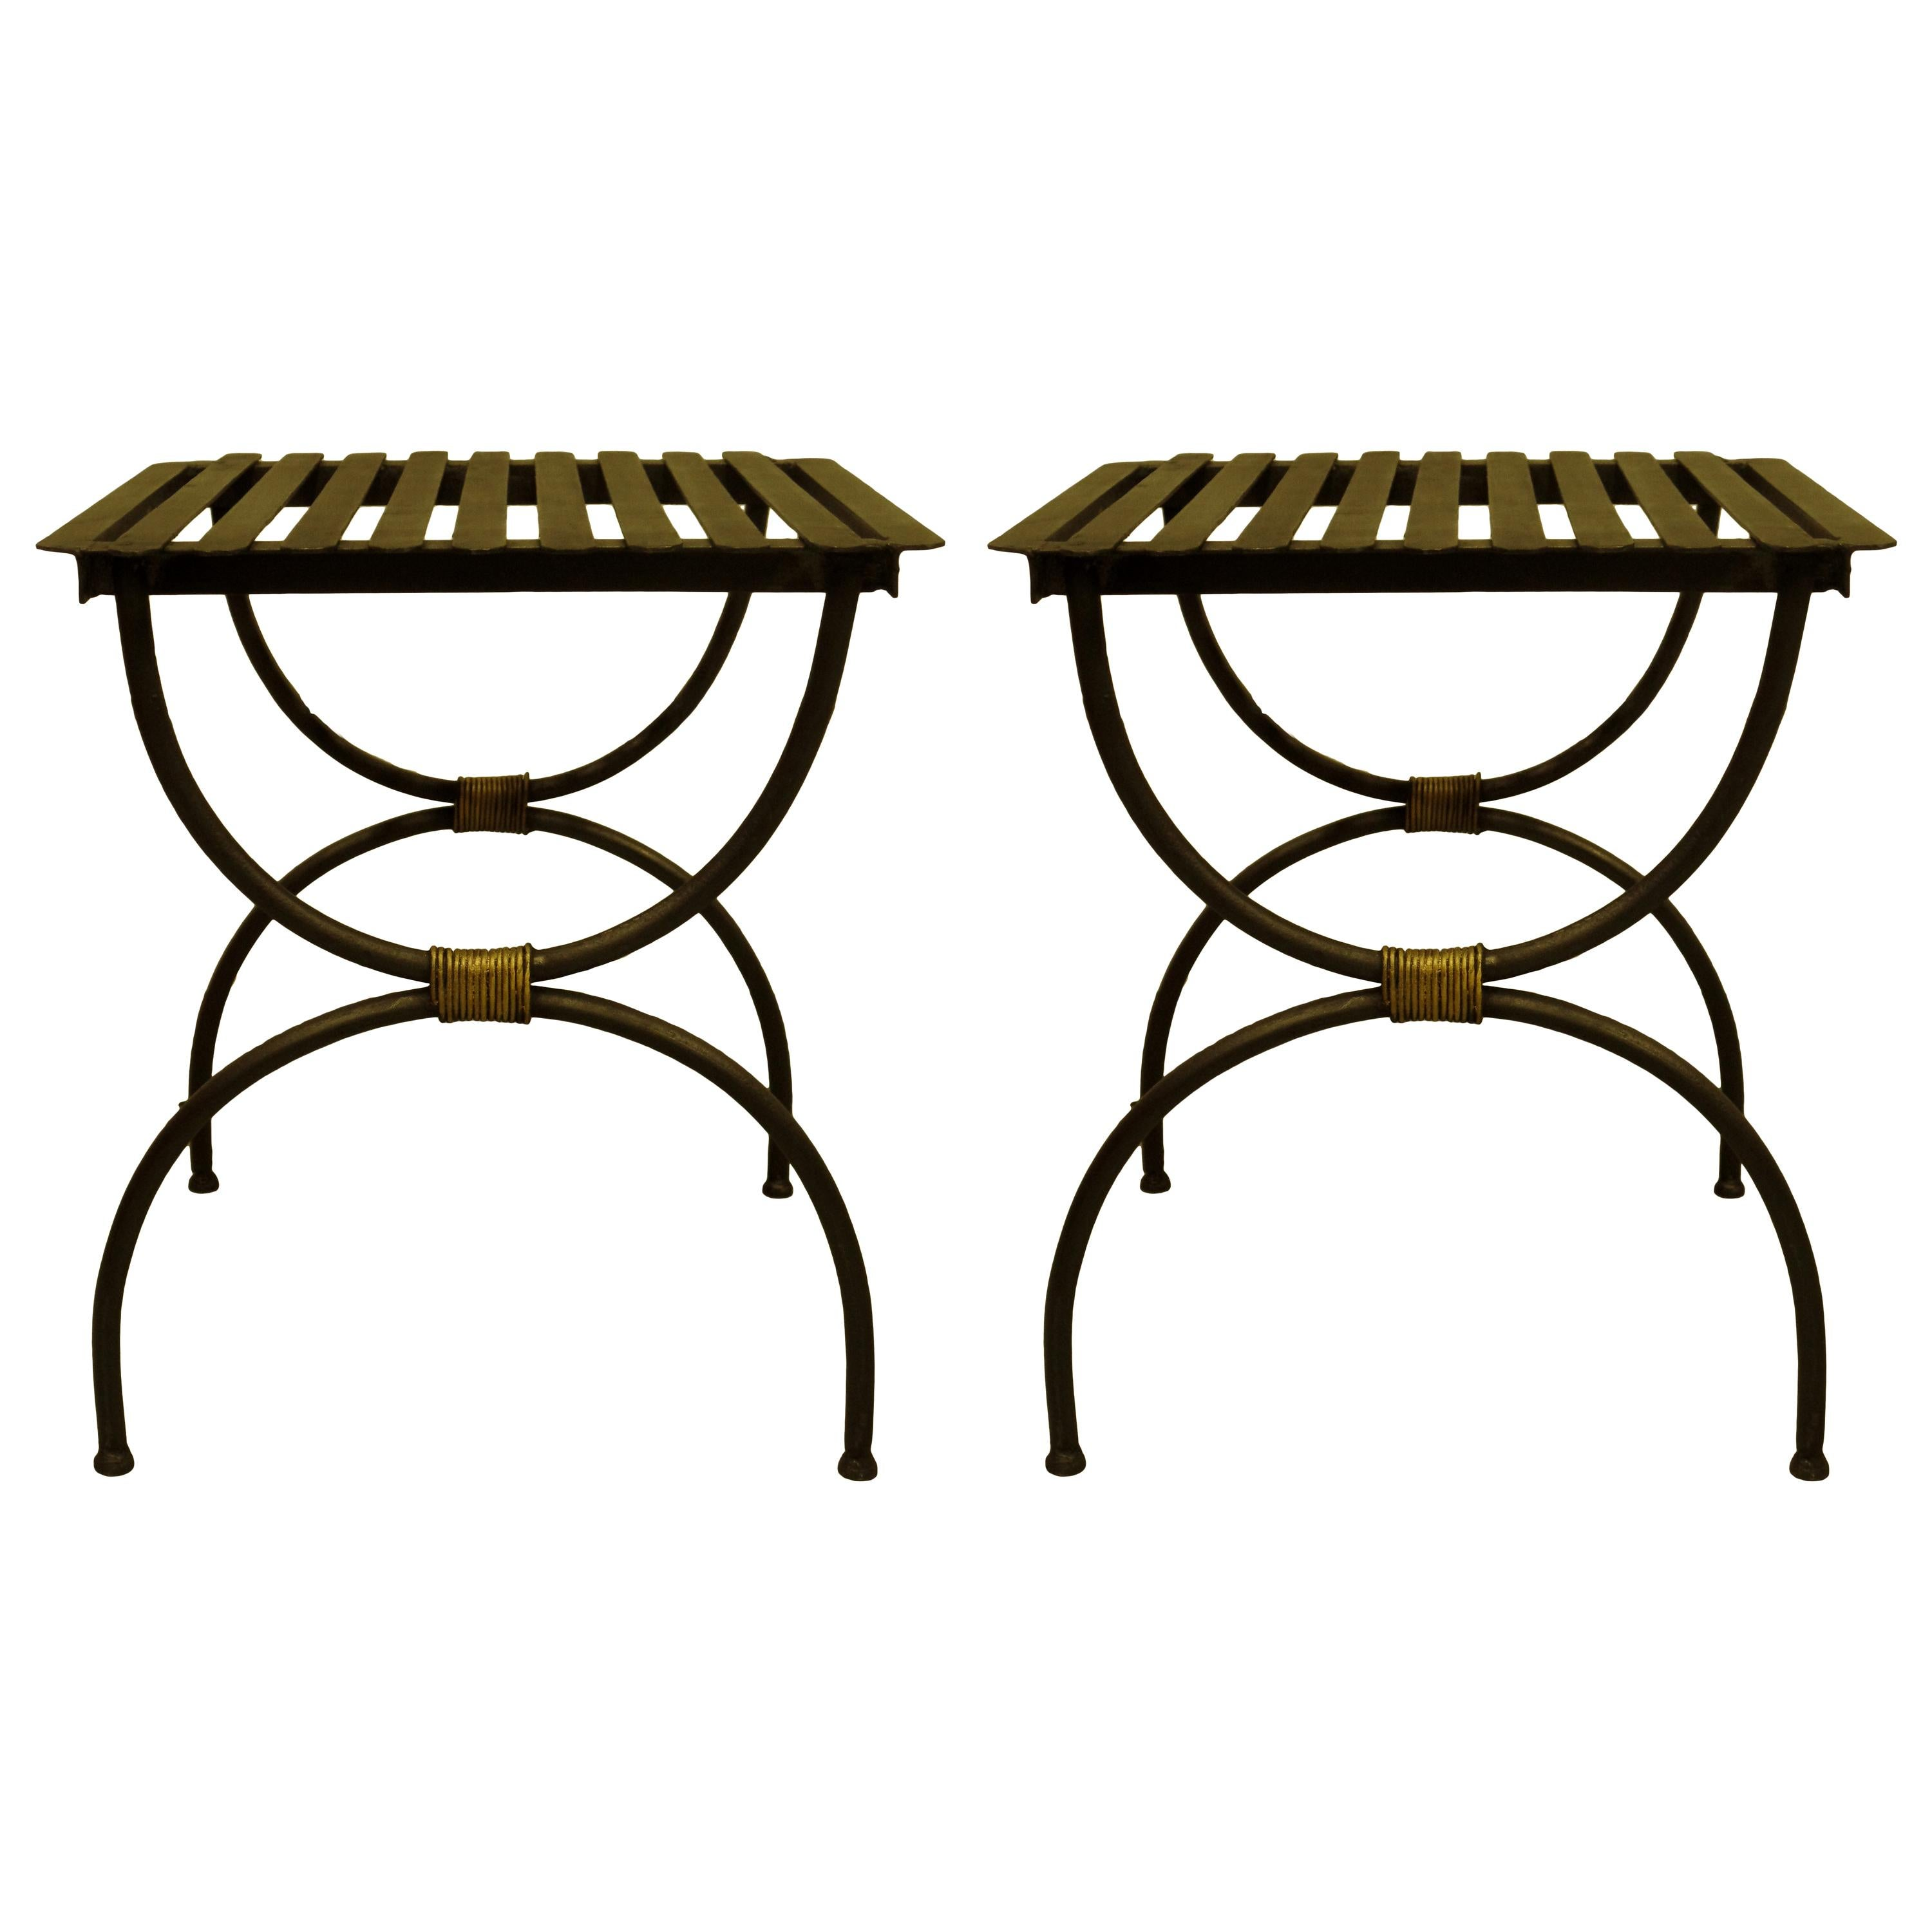 French Modern Neoclassical Iron Benches / Luggage Racks, Jean Michel Frank, Pair